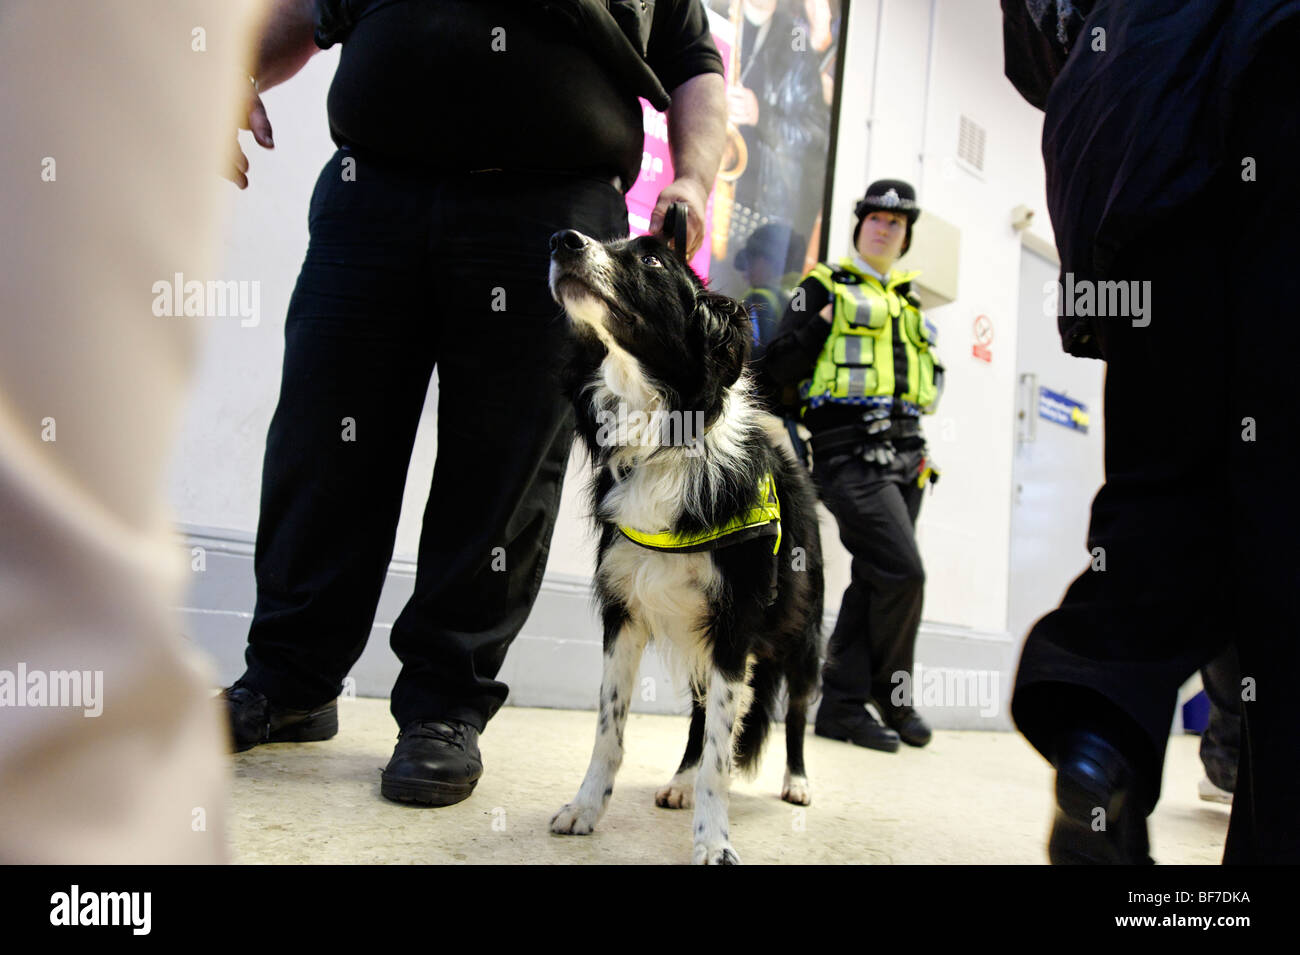 British Transport Police using  a drugs sniffer dog during routine neighborhood policing at Lewisham train station. - Stock Image